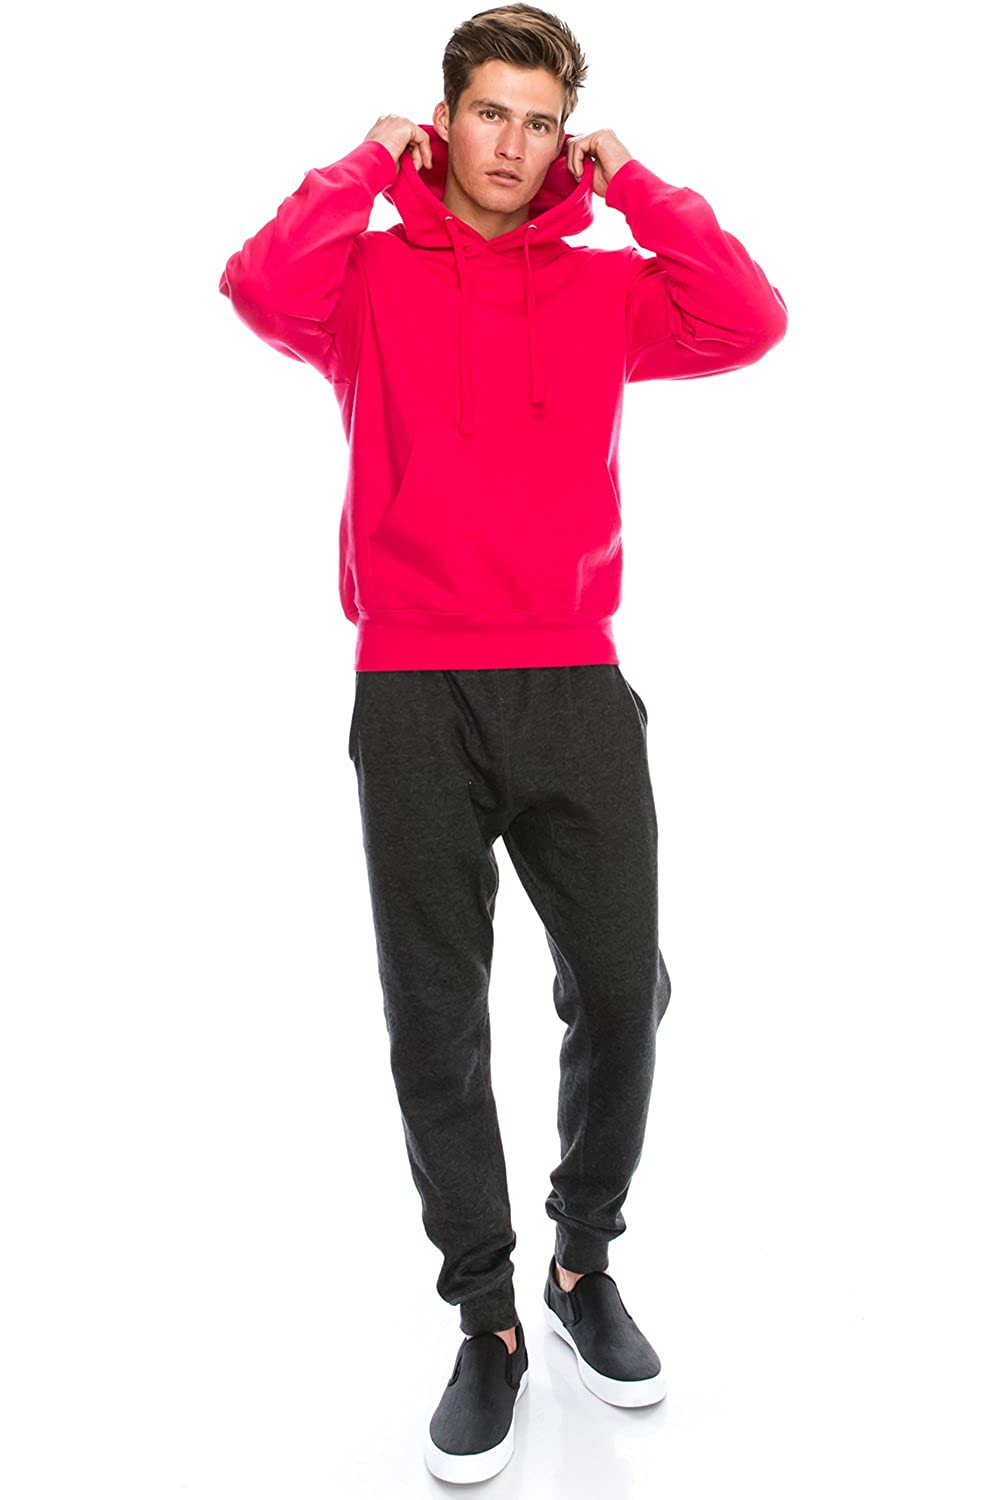 JC DISTRO Mens Hipster Long Sleeve Basic Active Slim Fit Causal Pullover Hoodie Sweatshirts